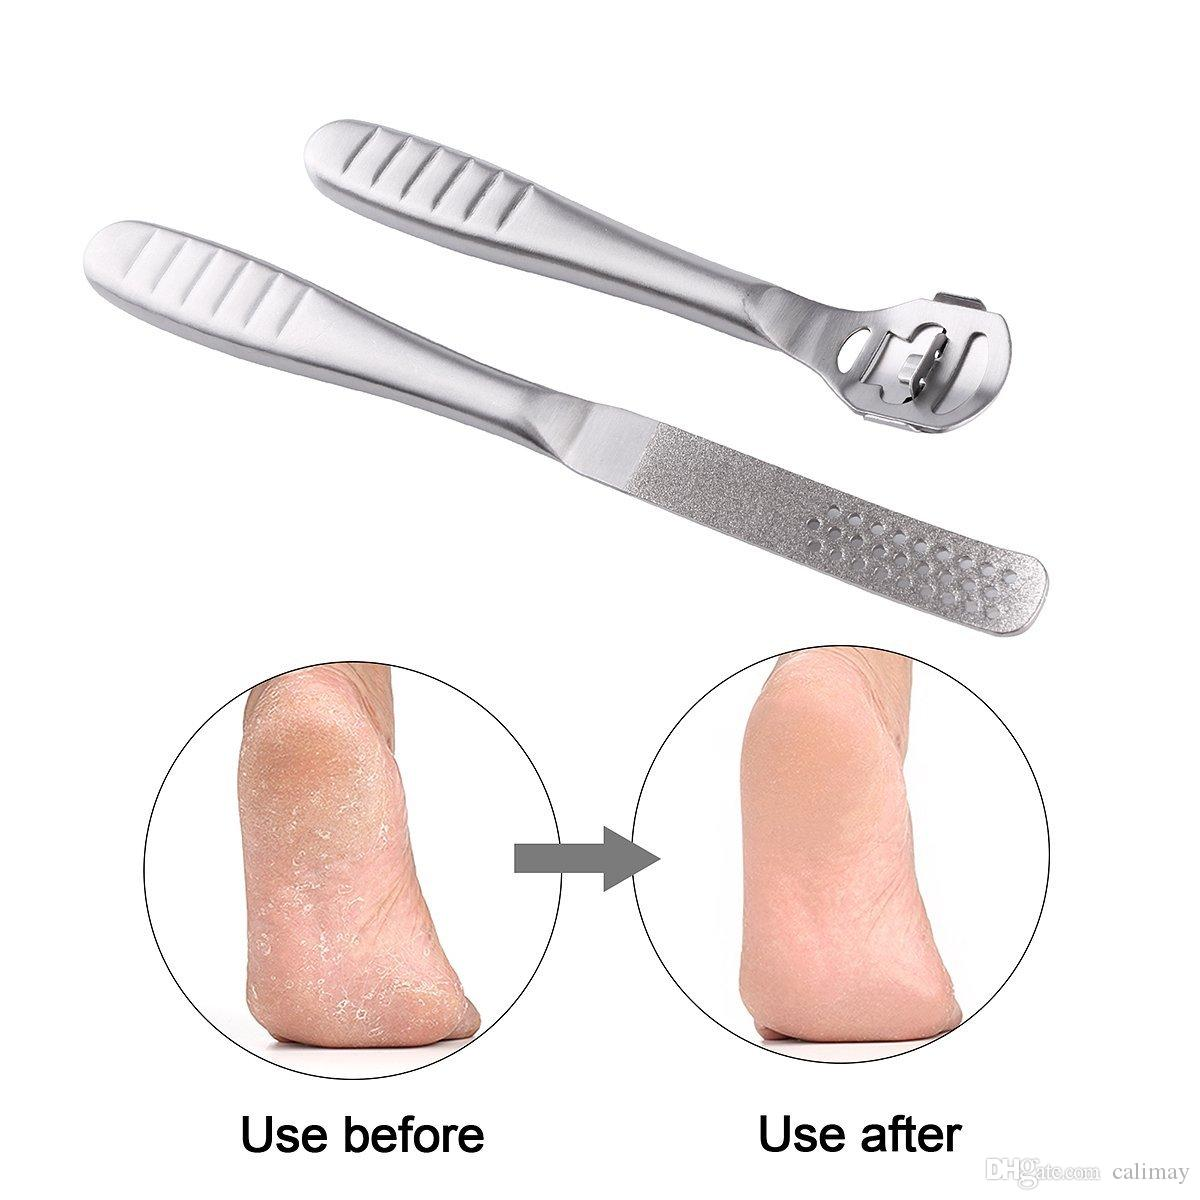 Stainless Steel Callus Shaver Callus Remover File Refill Dead Hard Skin Remove Foot Care Pedicure Tools Set with 10 Blades